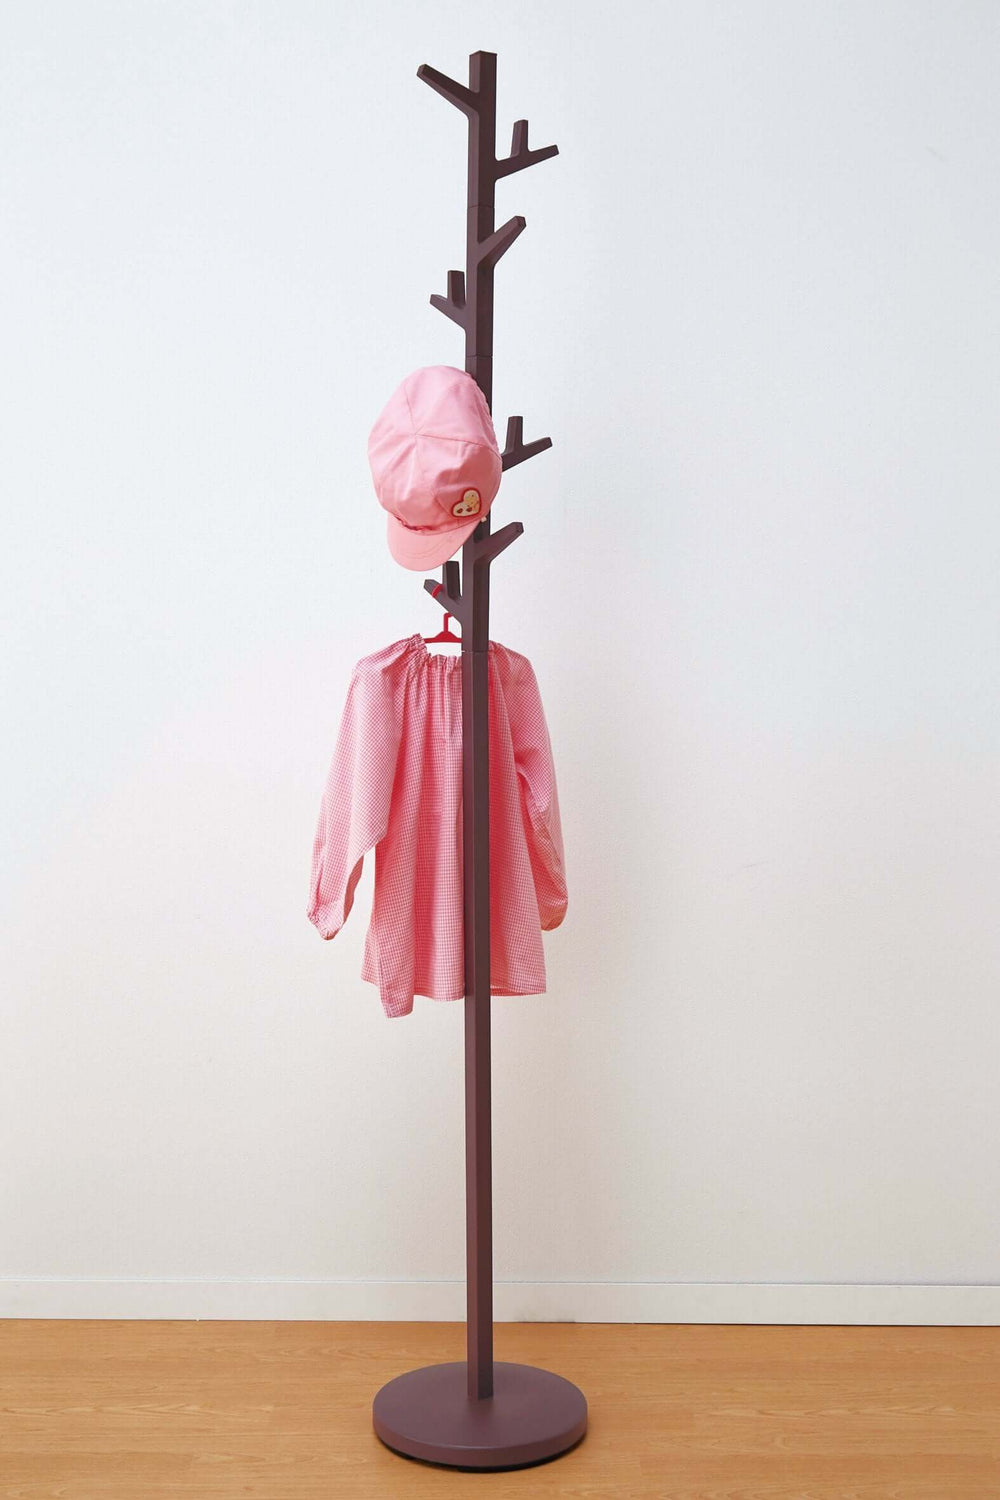 Yamazaki's Brown coat rack in the shape of a tree, hung with pink children's clothes.